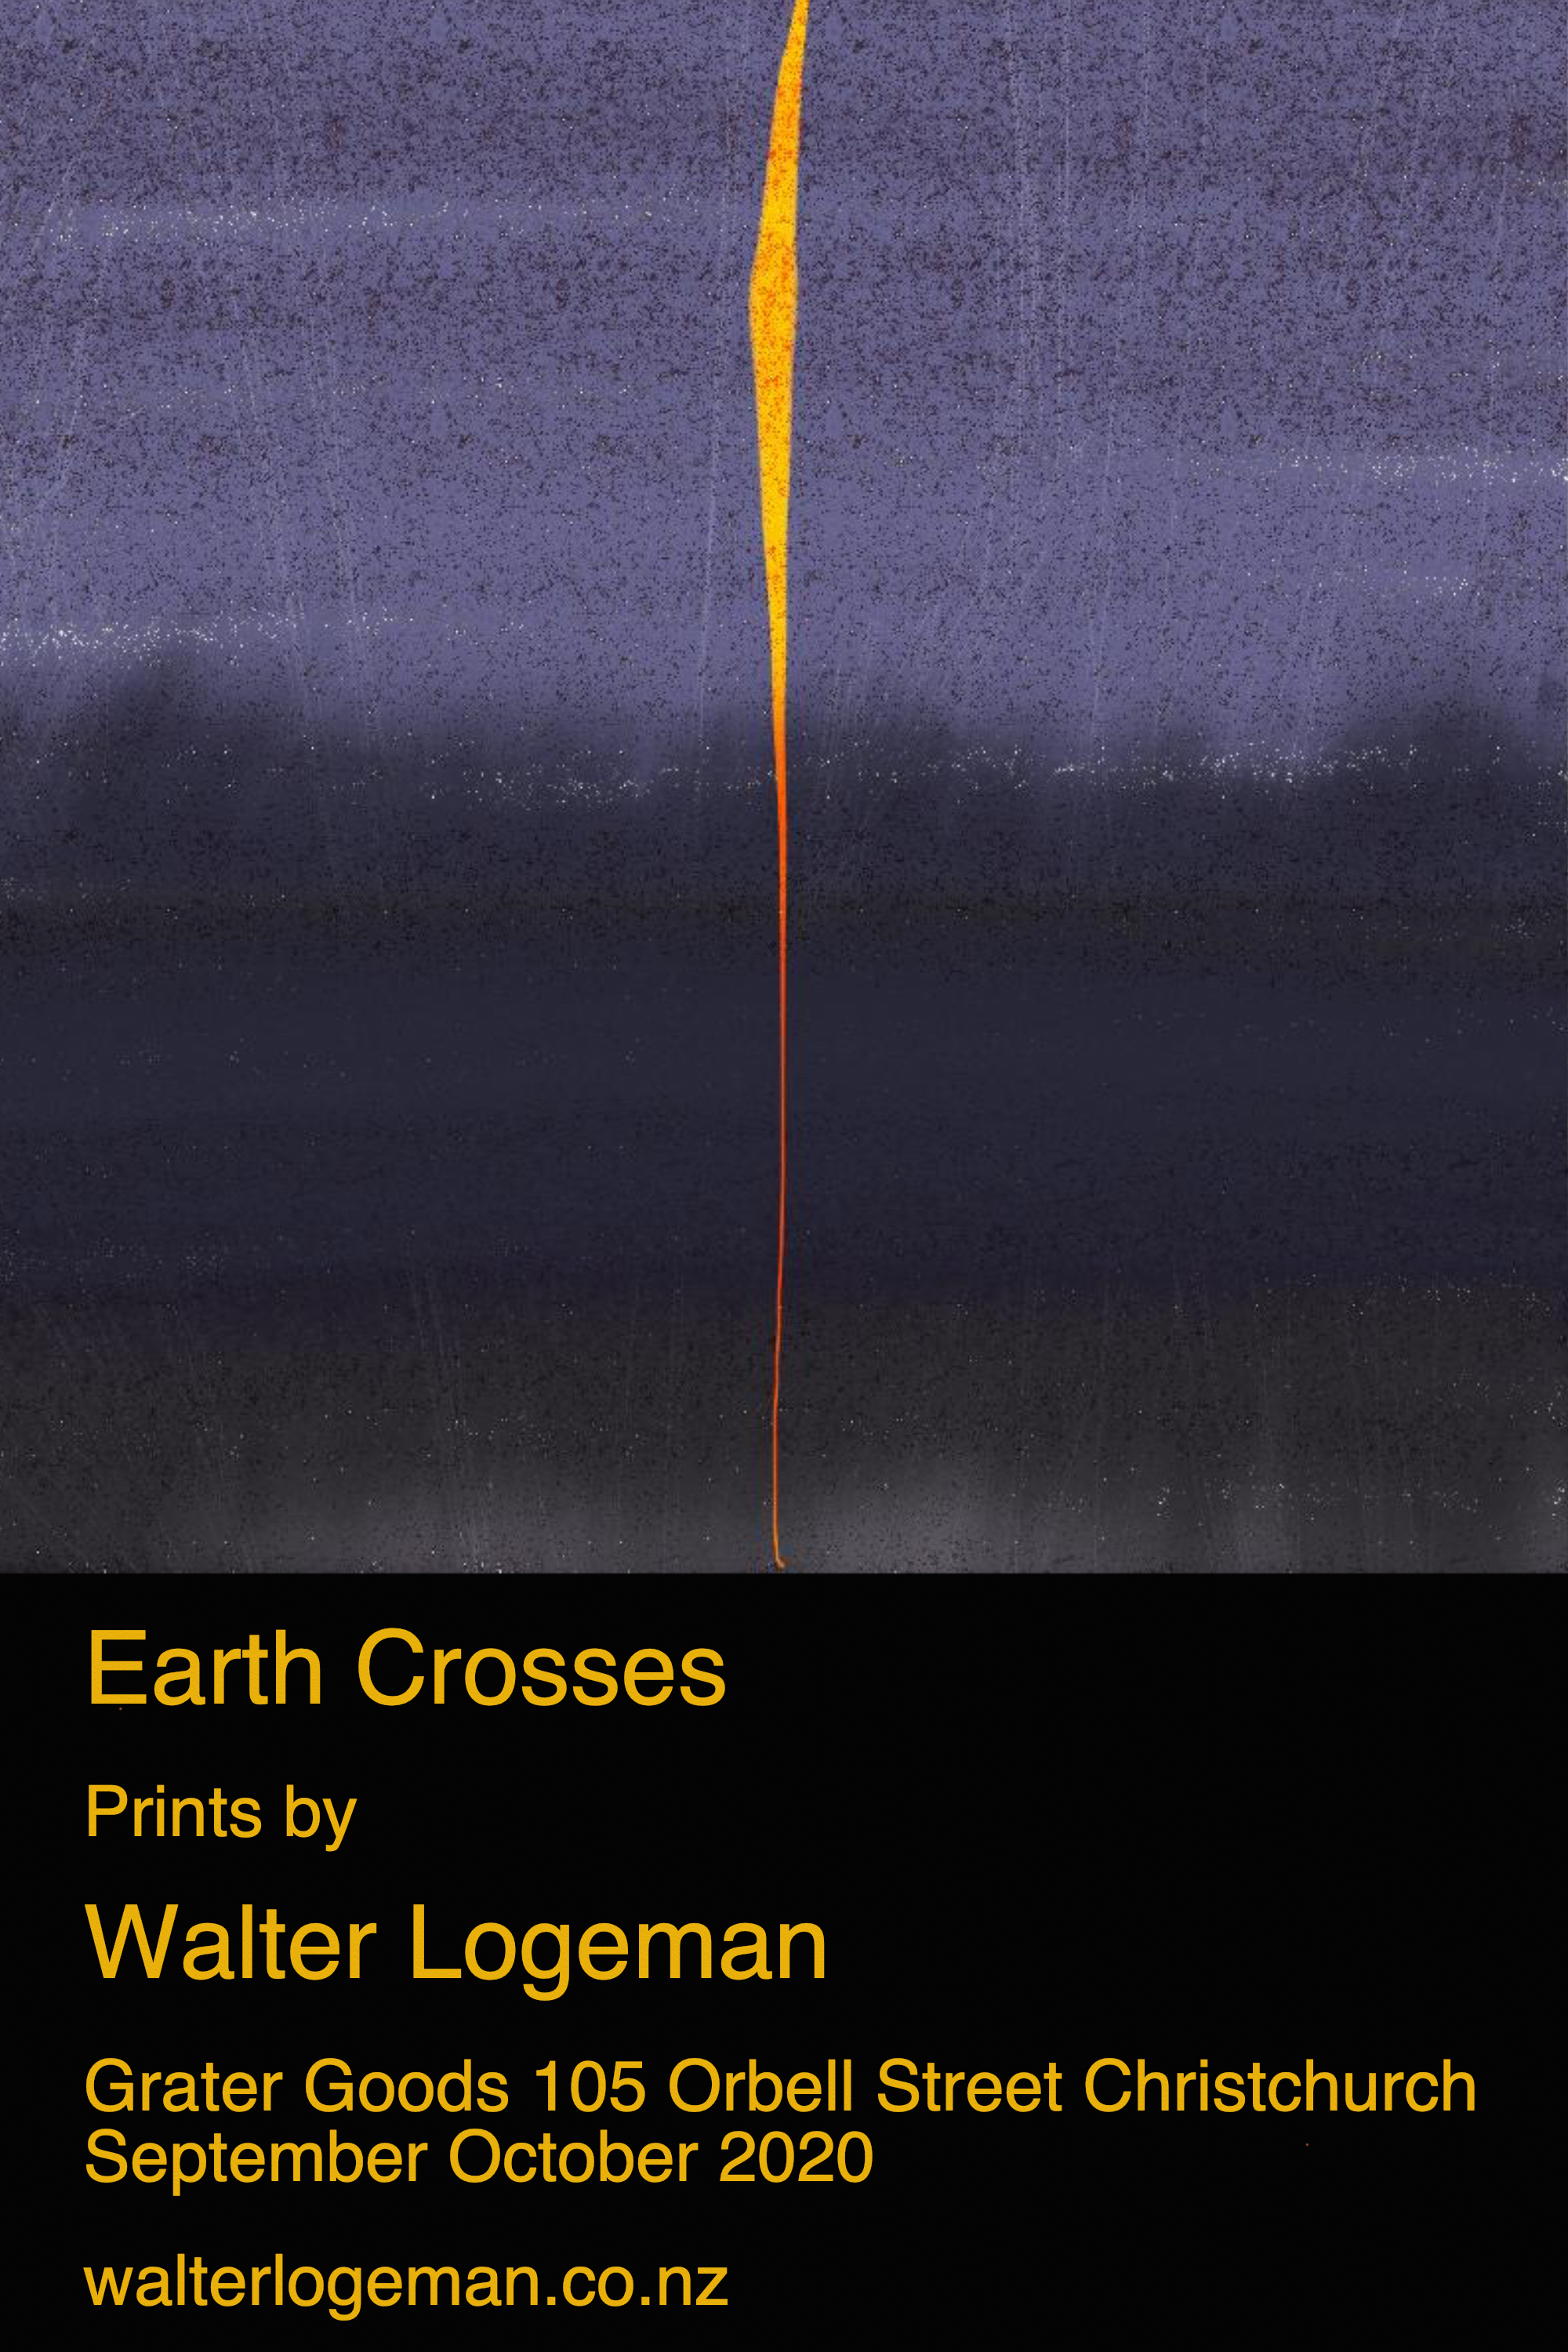 earth crosss postcard-vl1